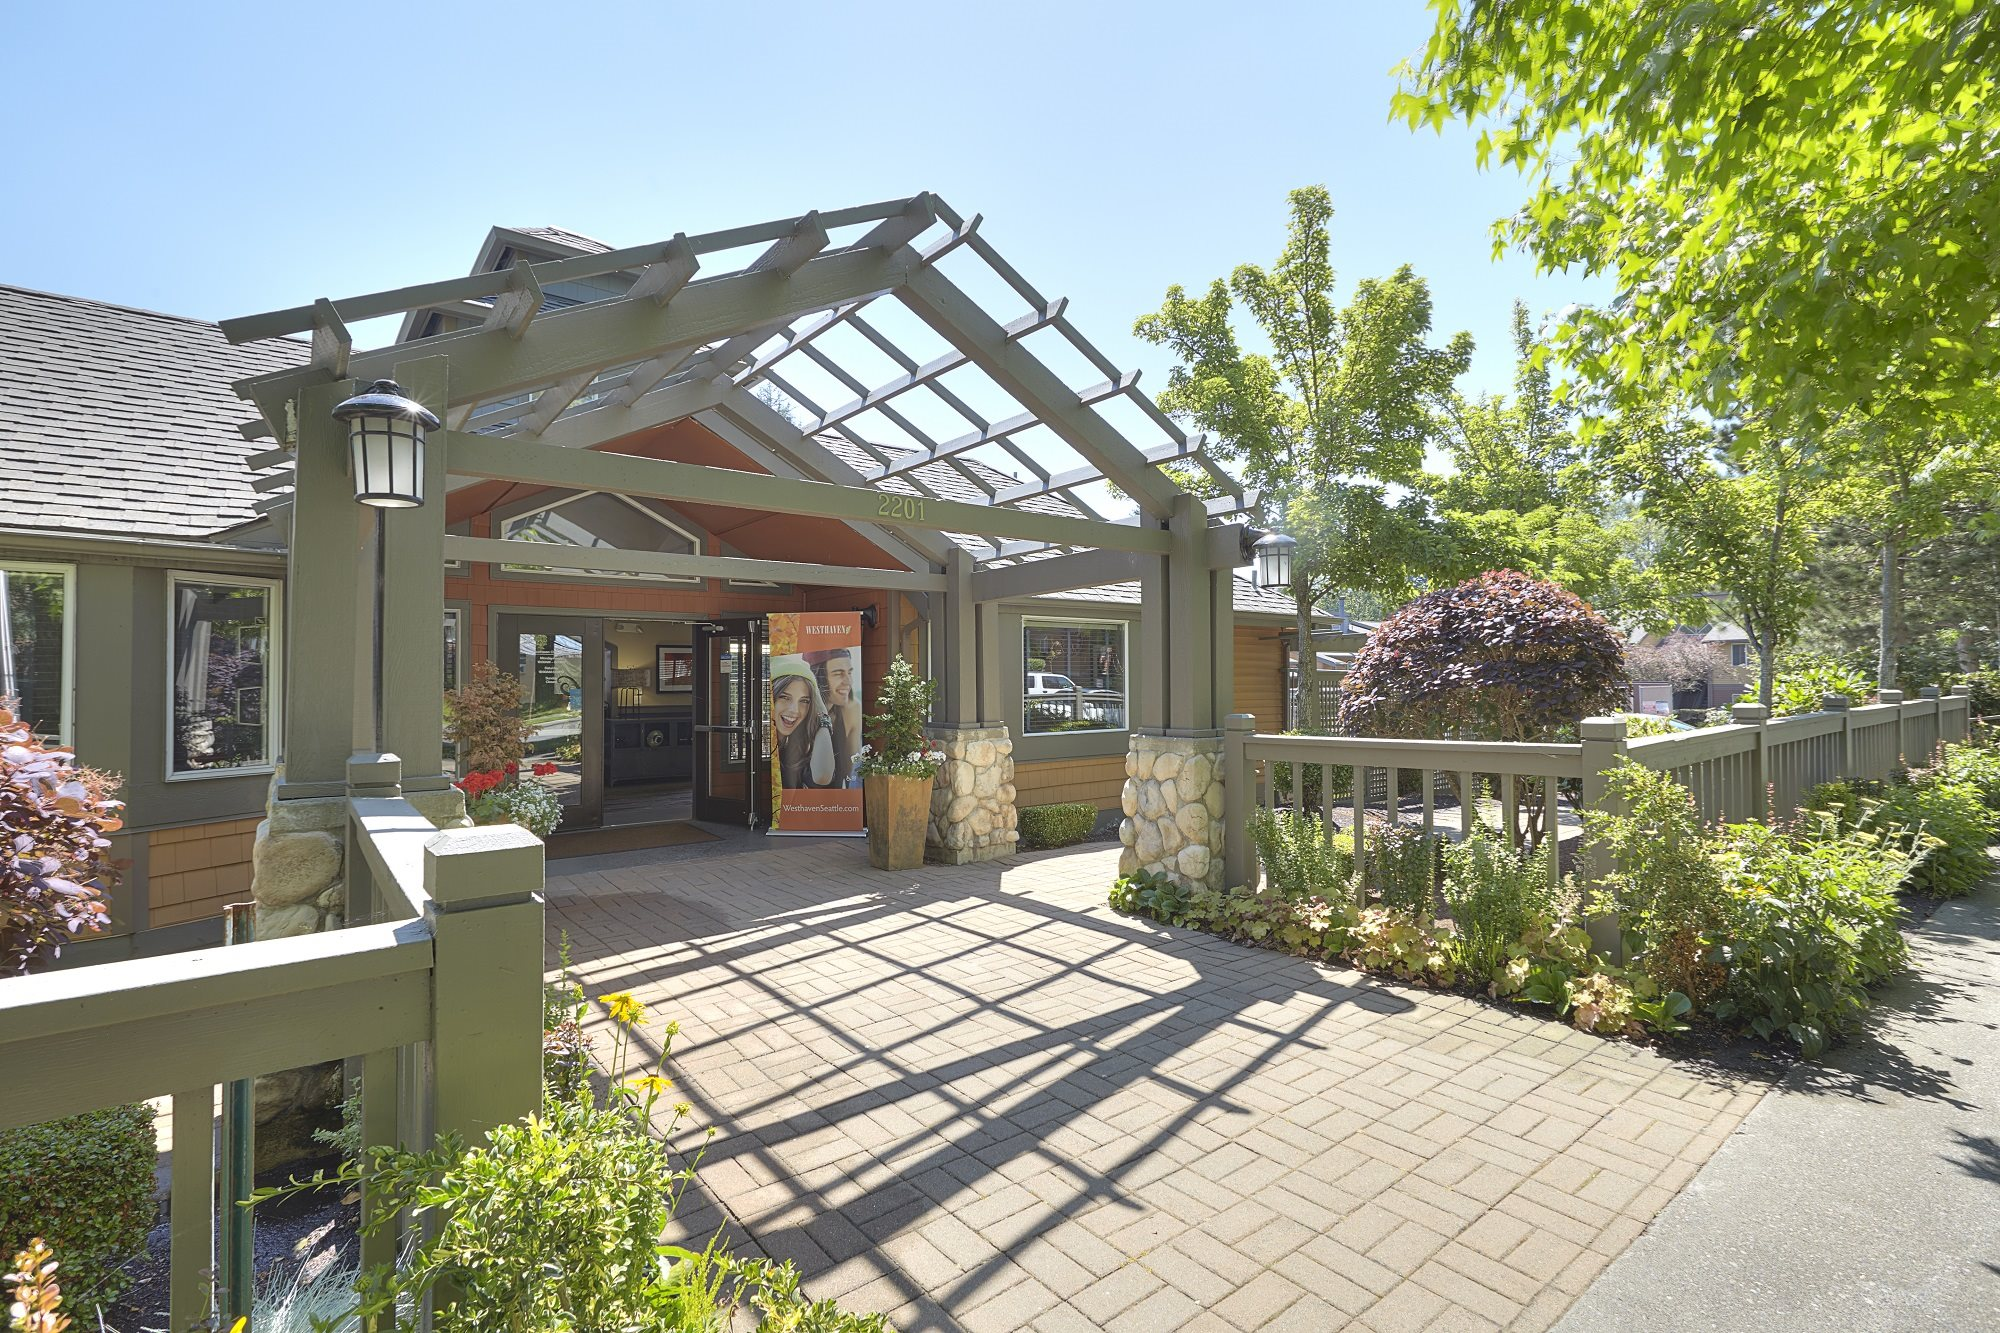 Photos And Video Of Westhaven Apartments In Seattle Wa